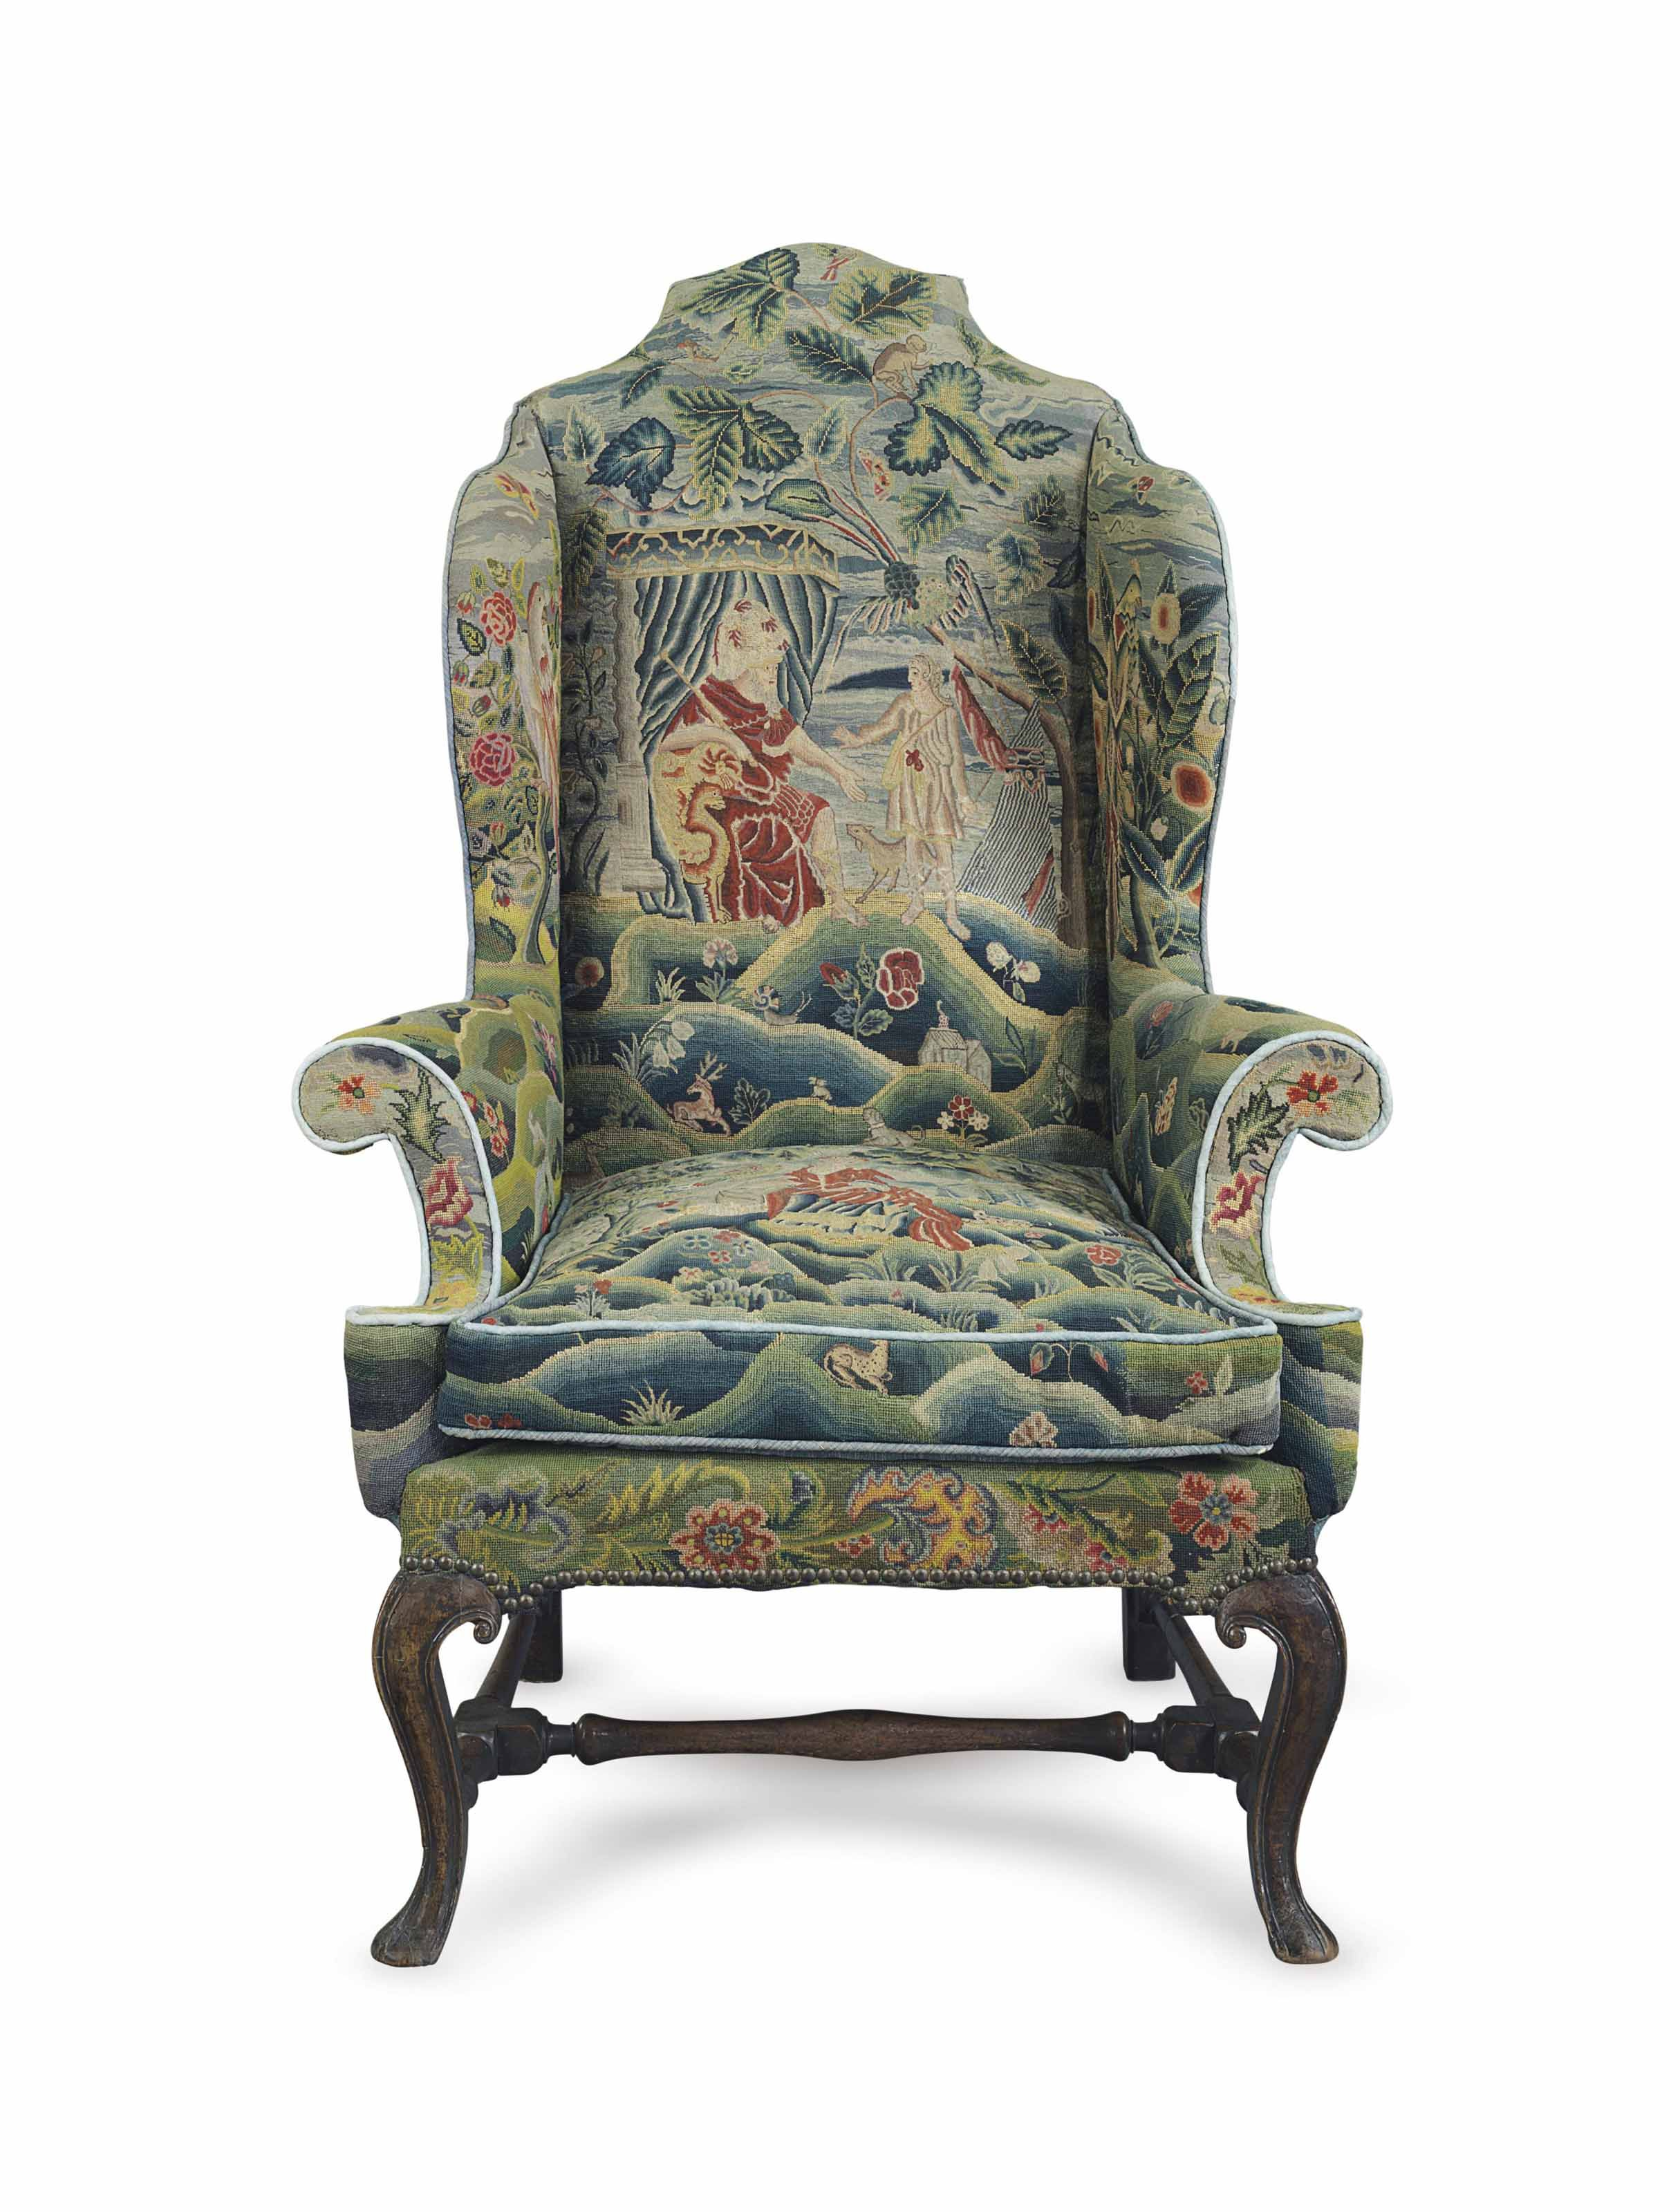 C1710 A Queen Anne Walnut And Beech Wing Armchair Circa 1710 Price